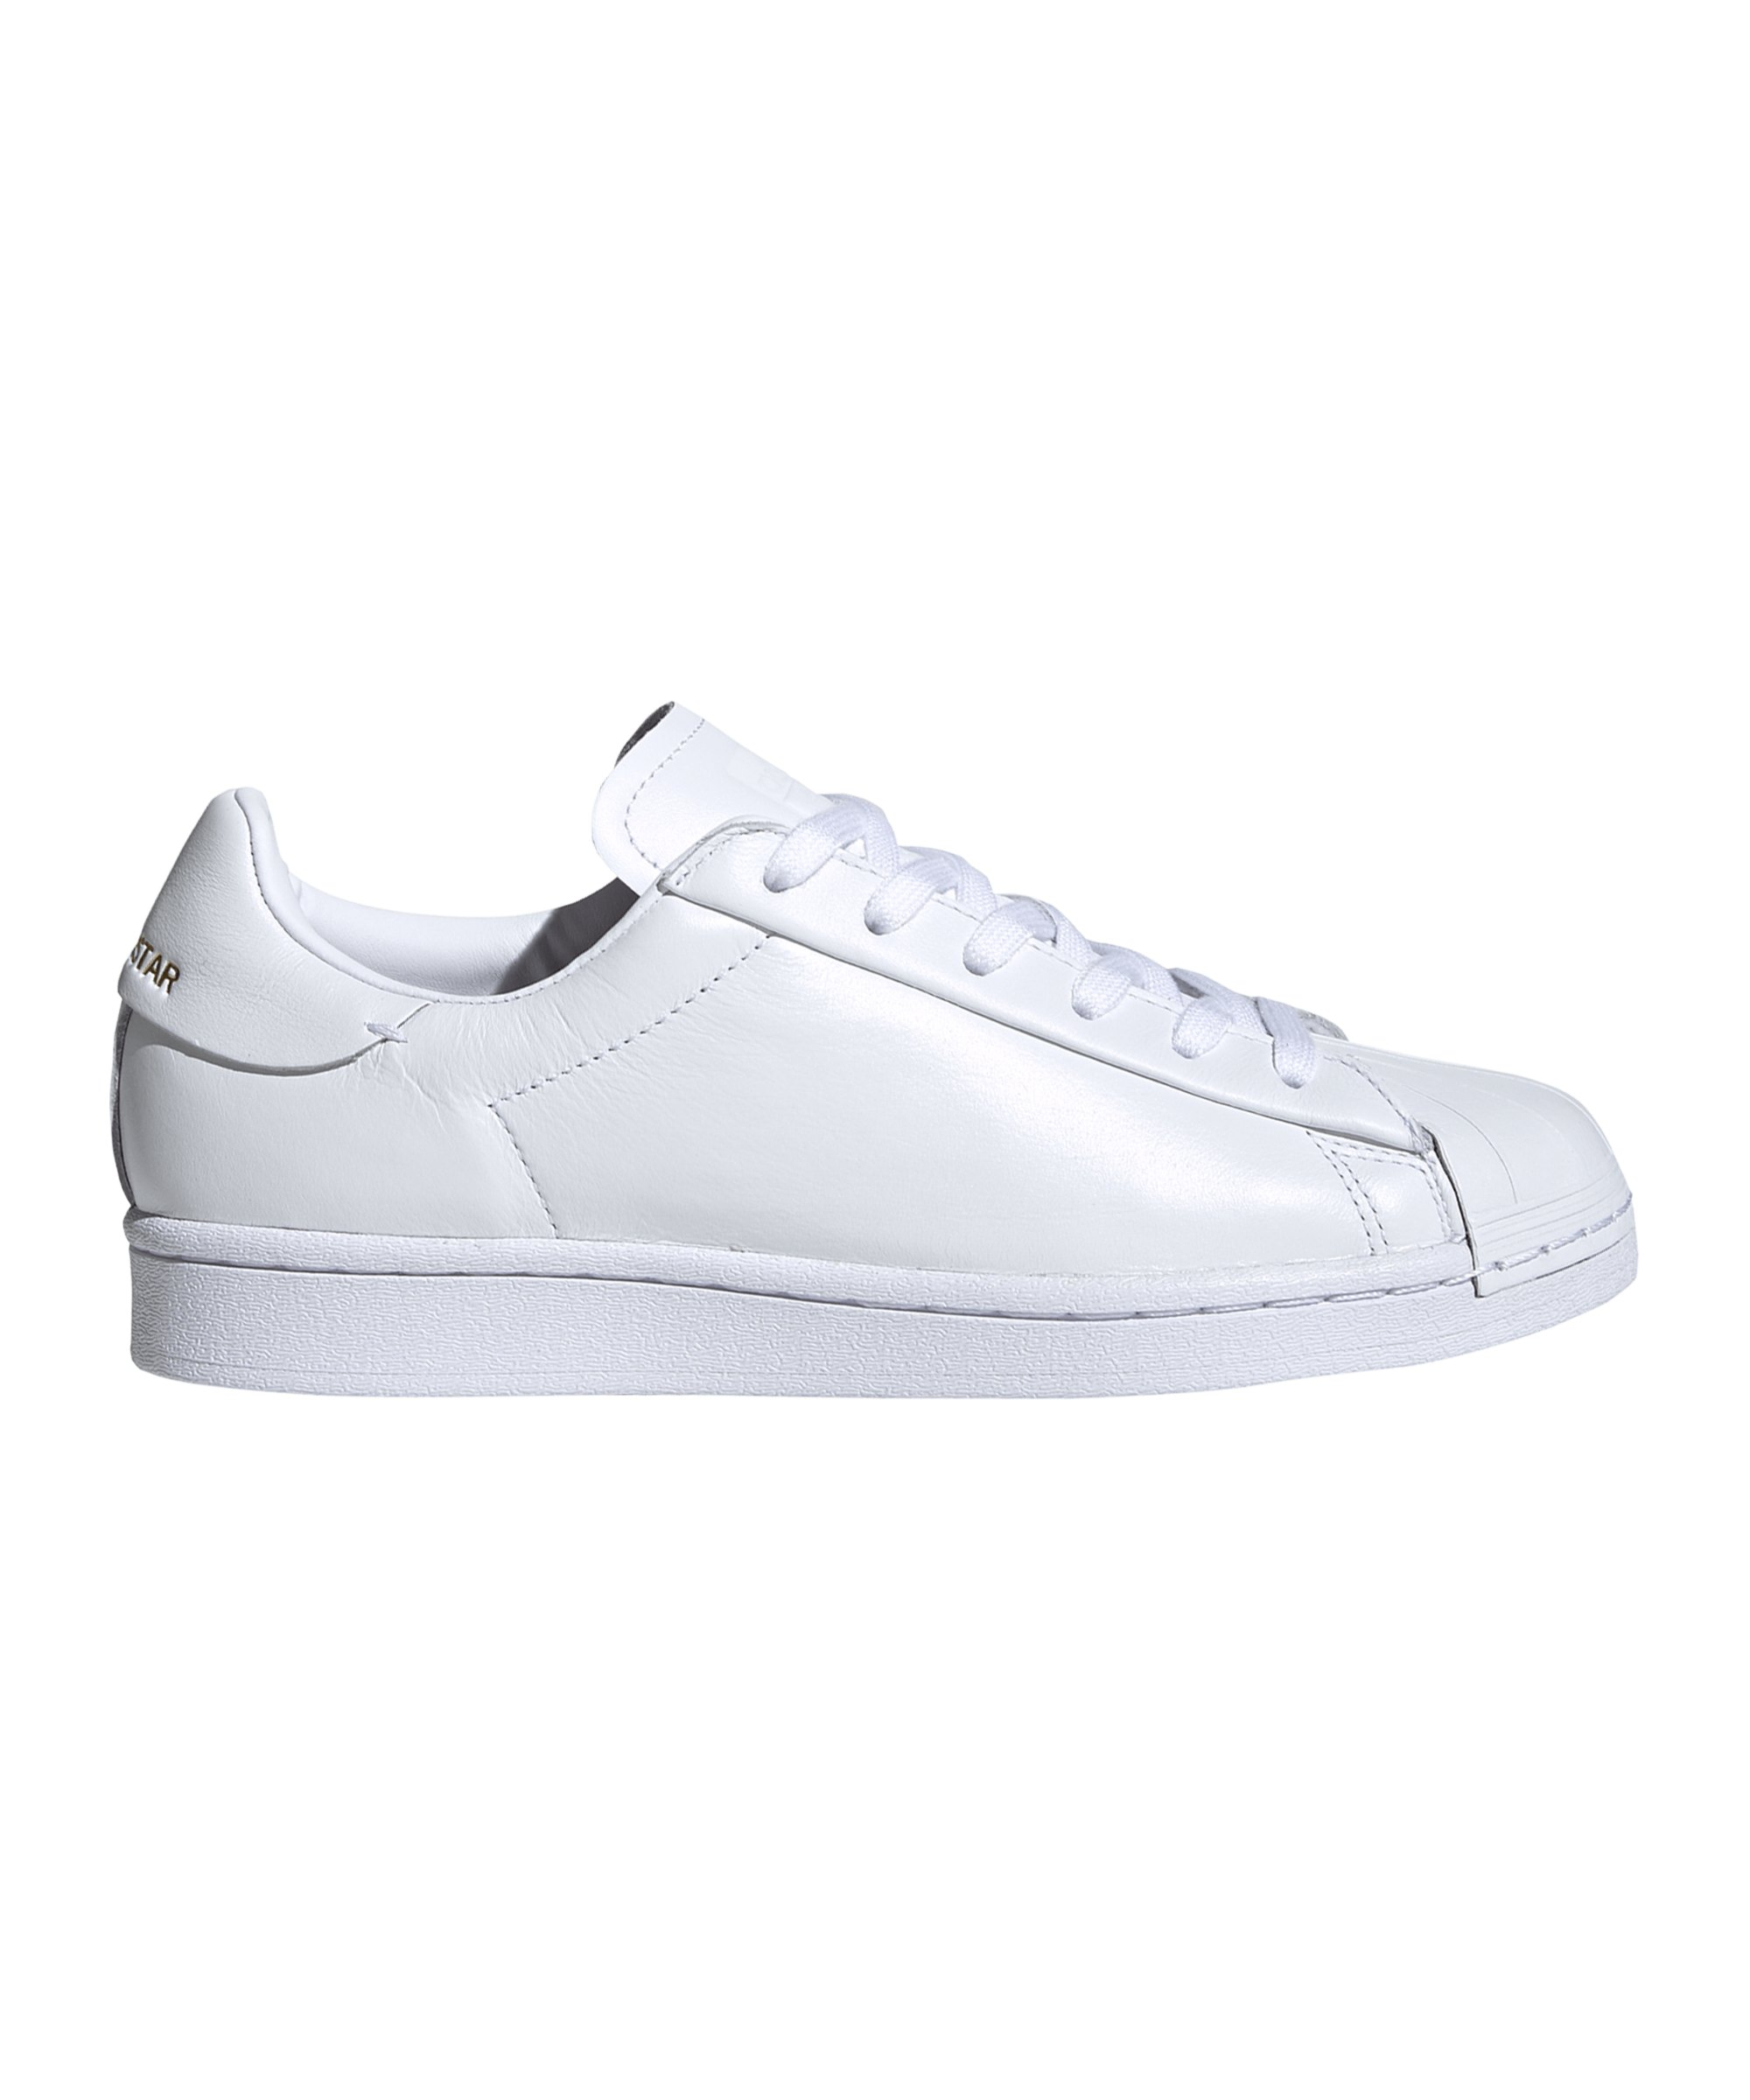 superstar schuhe adidas damen